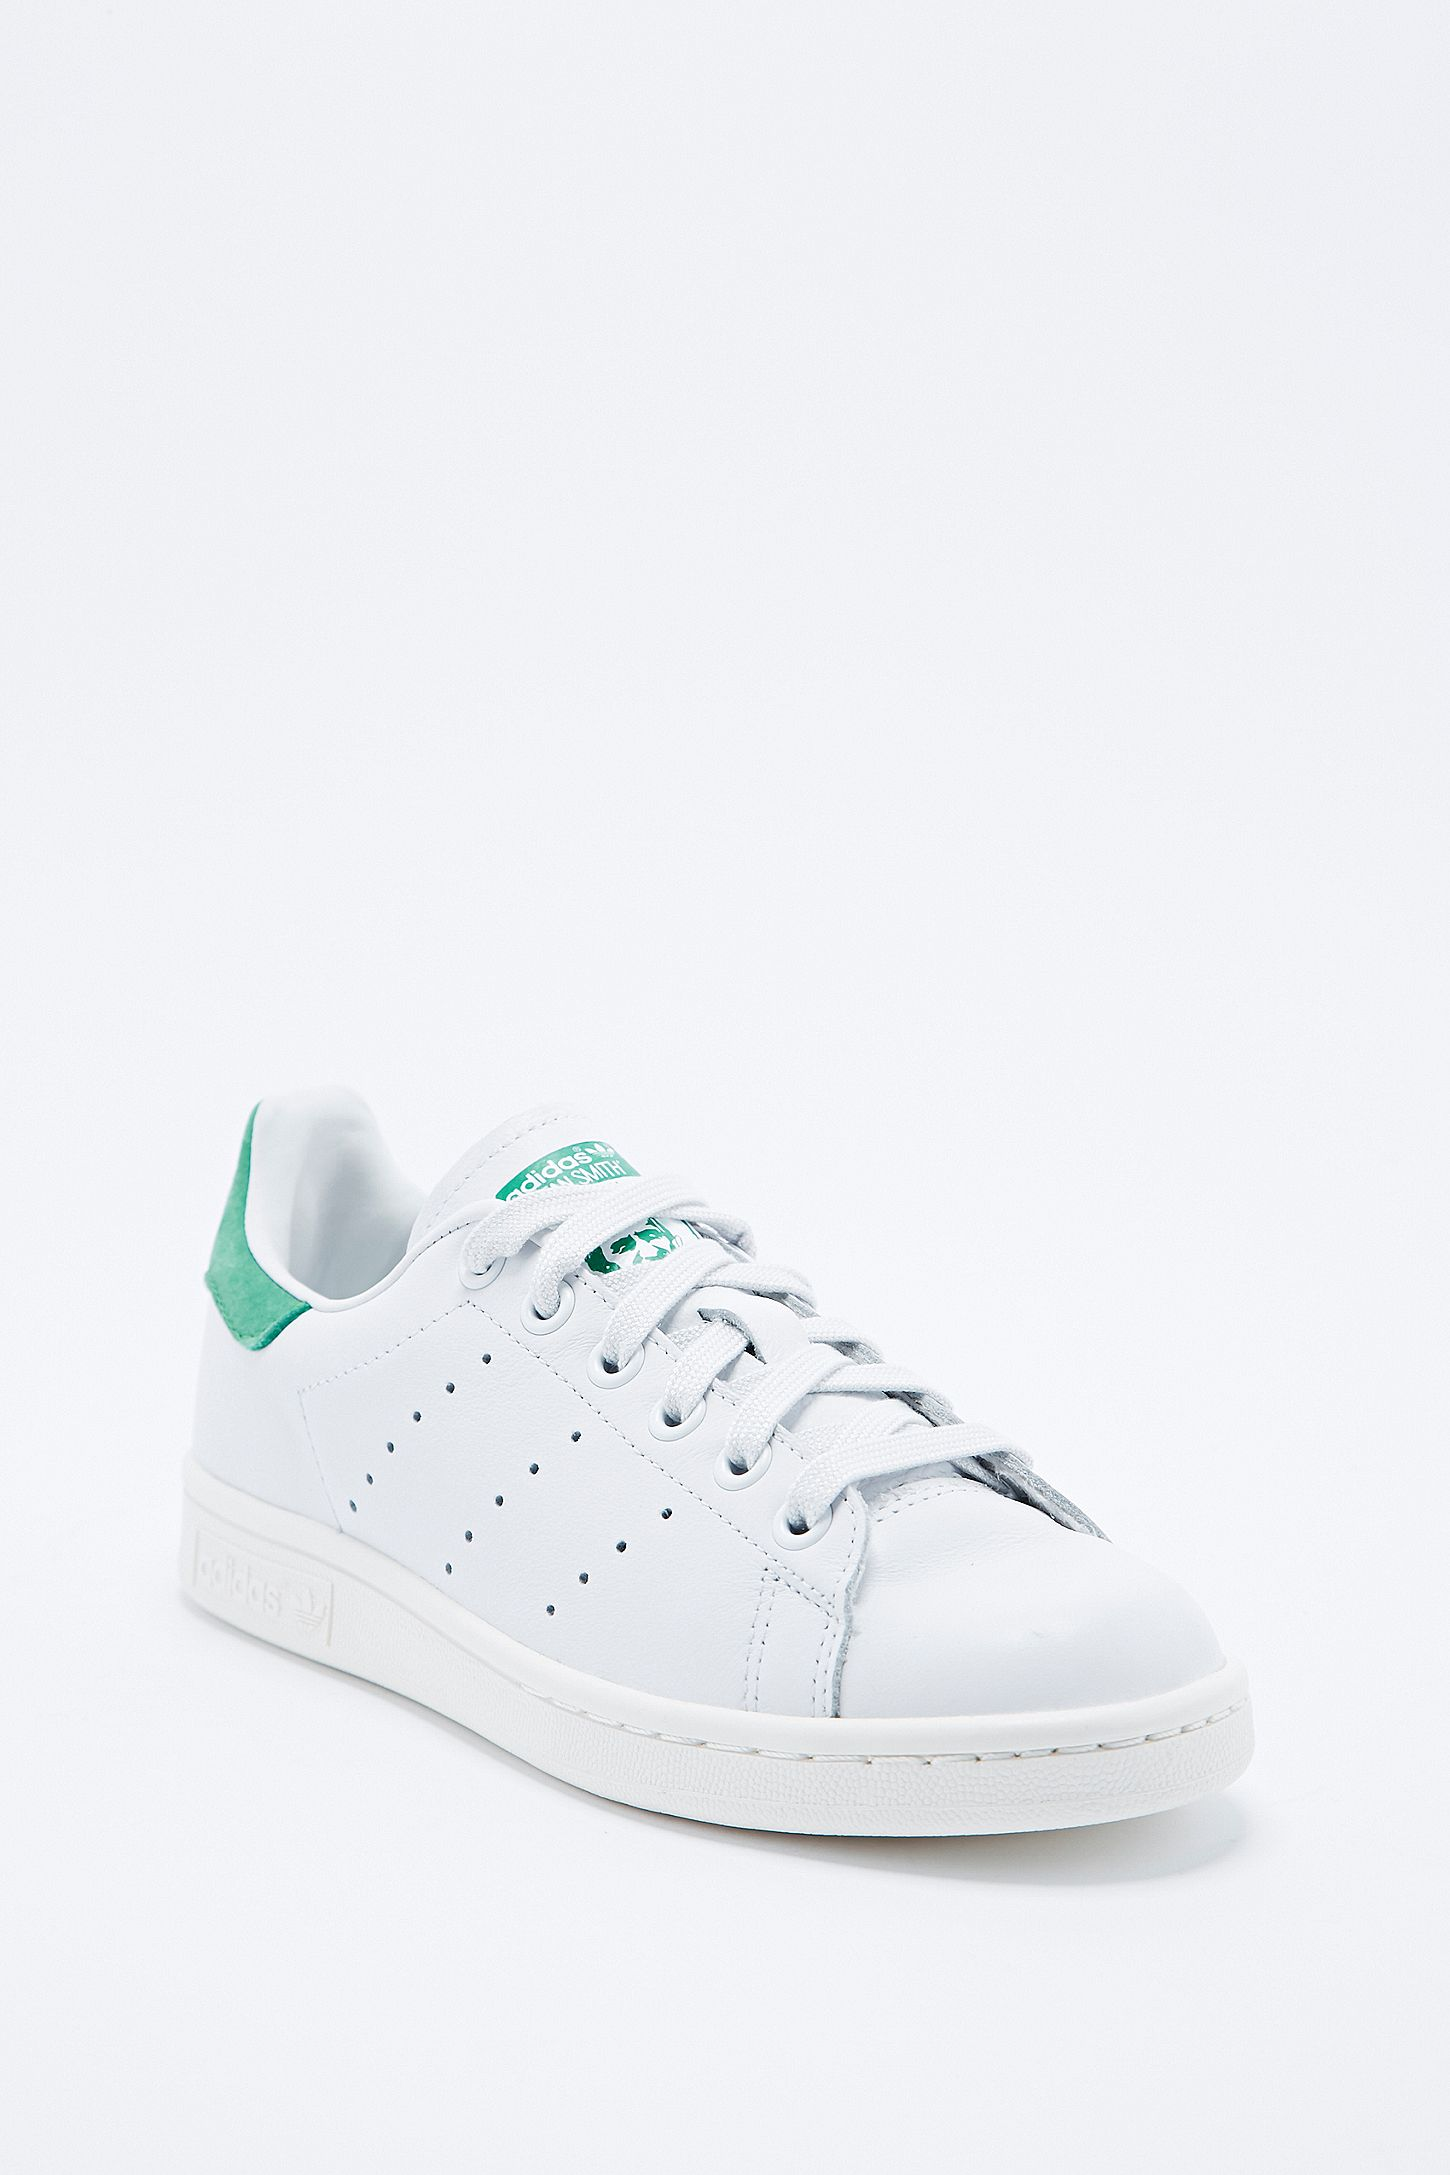 adidas Originals Stan Smith White Trainers. Click on image to zoom. Hover  to zoom. Double Tap to Zoom 50be86a9d9c1